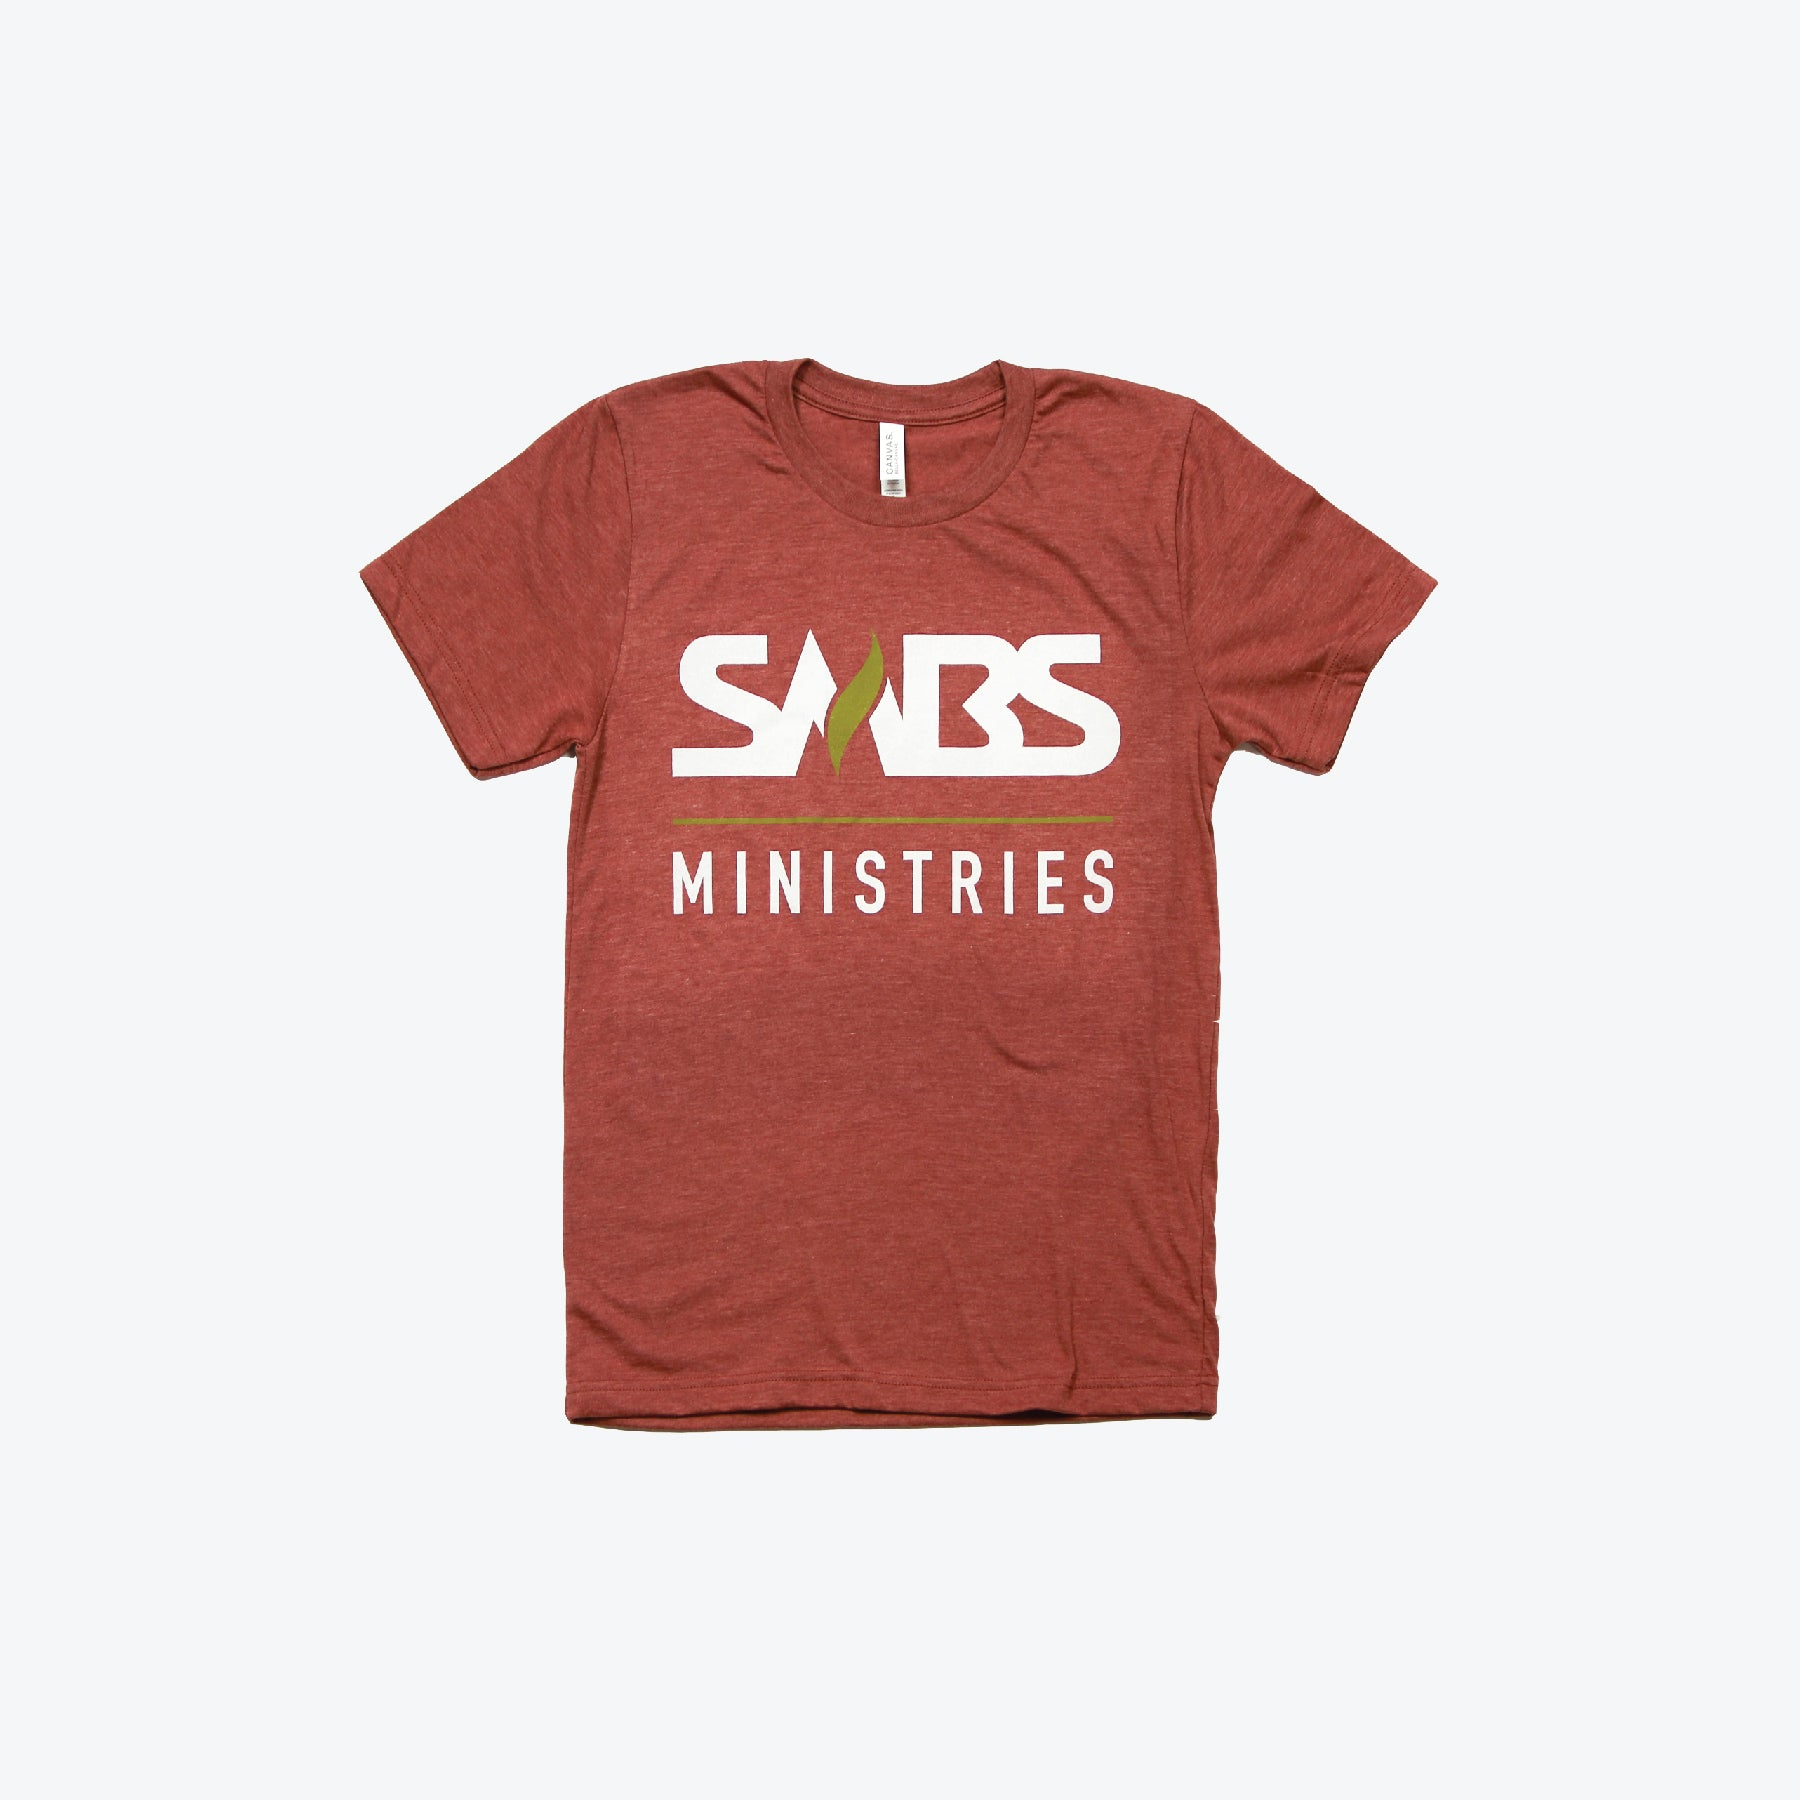 SMBS Ministries T-Shirt